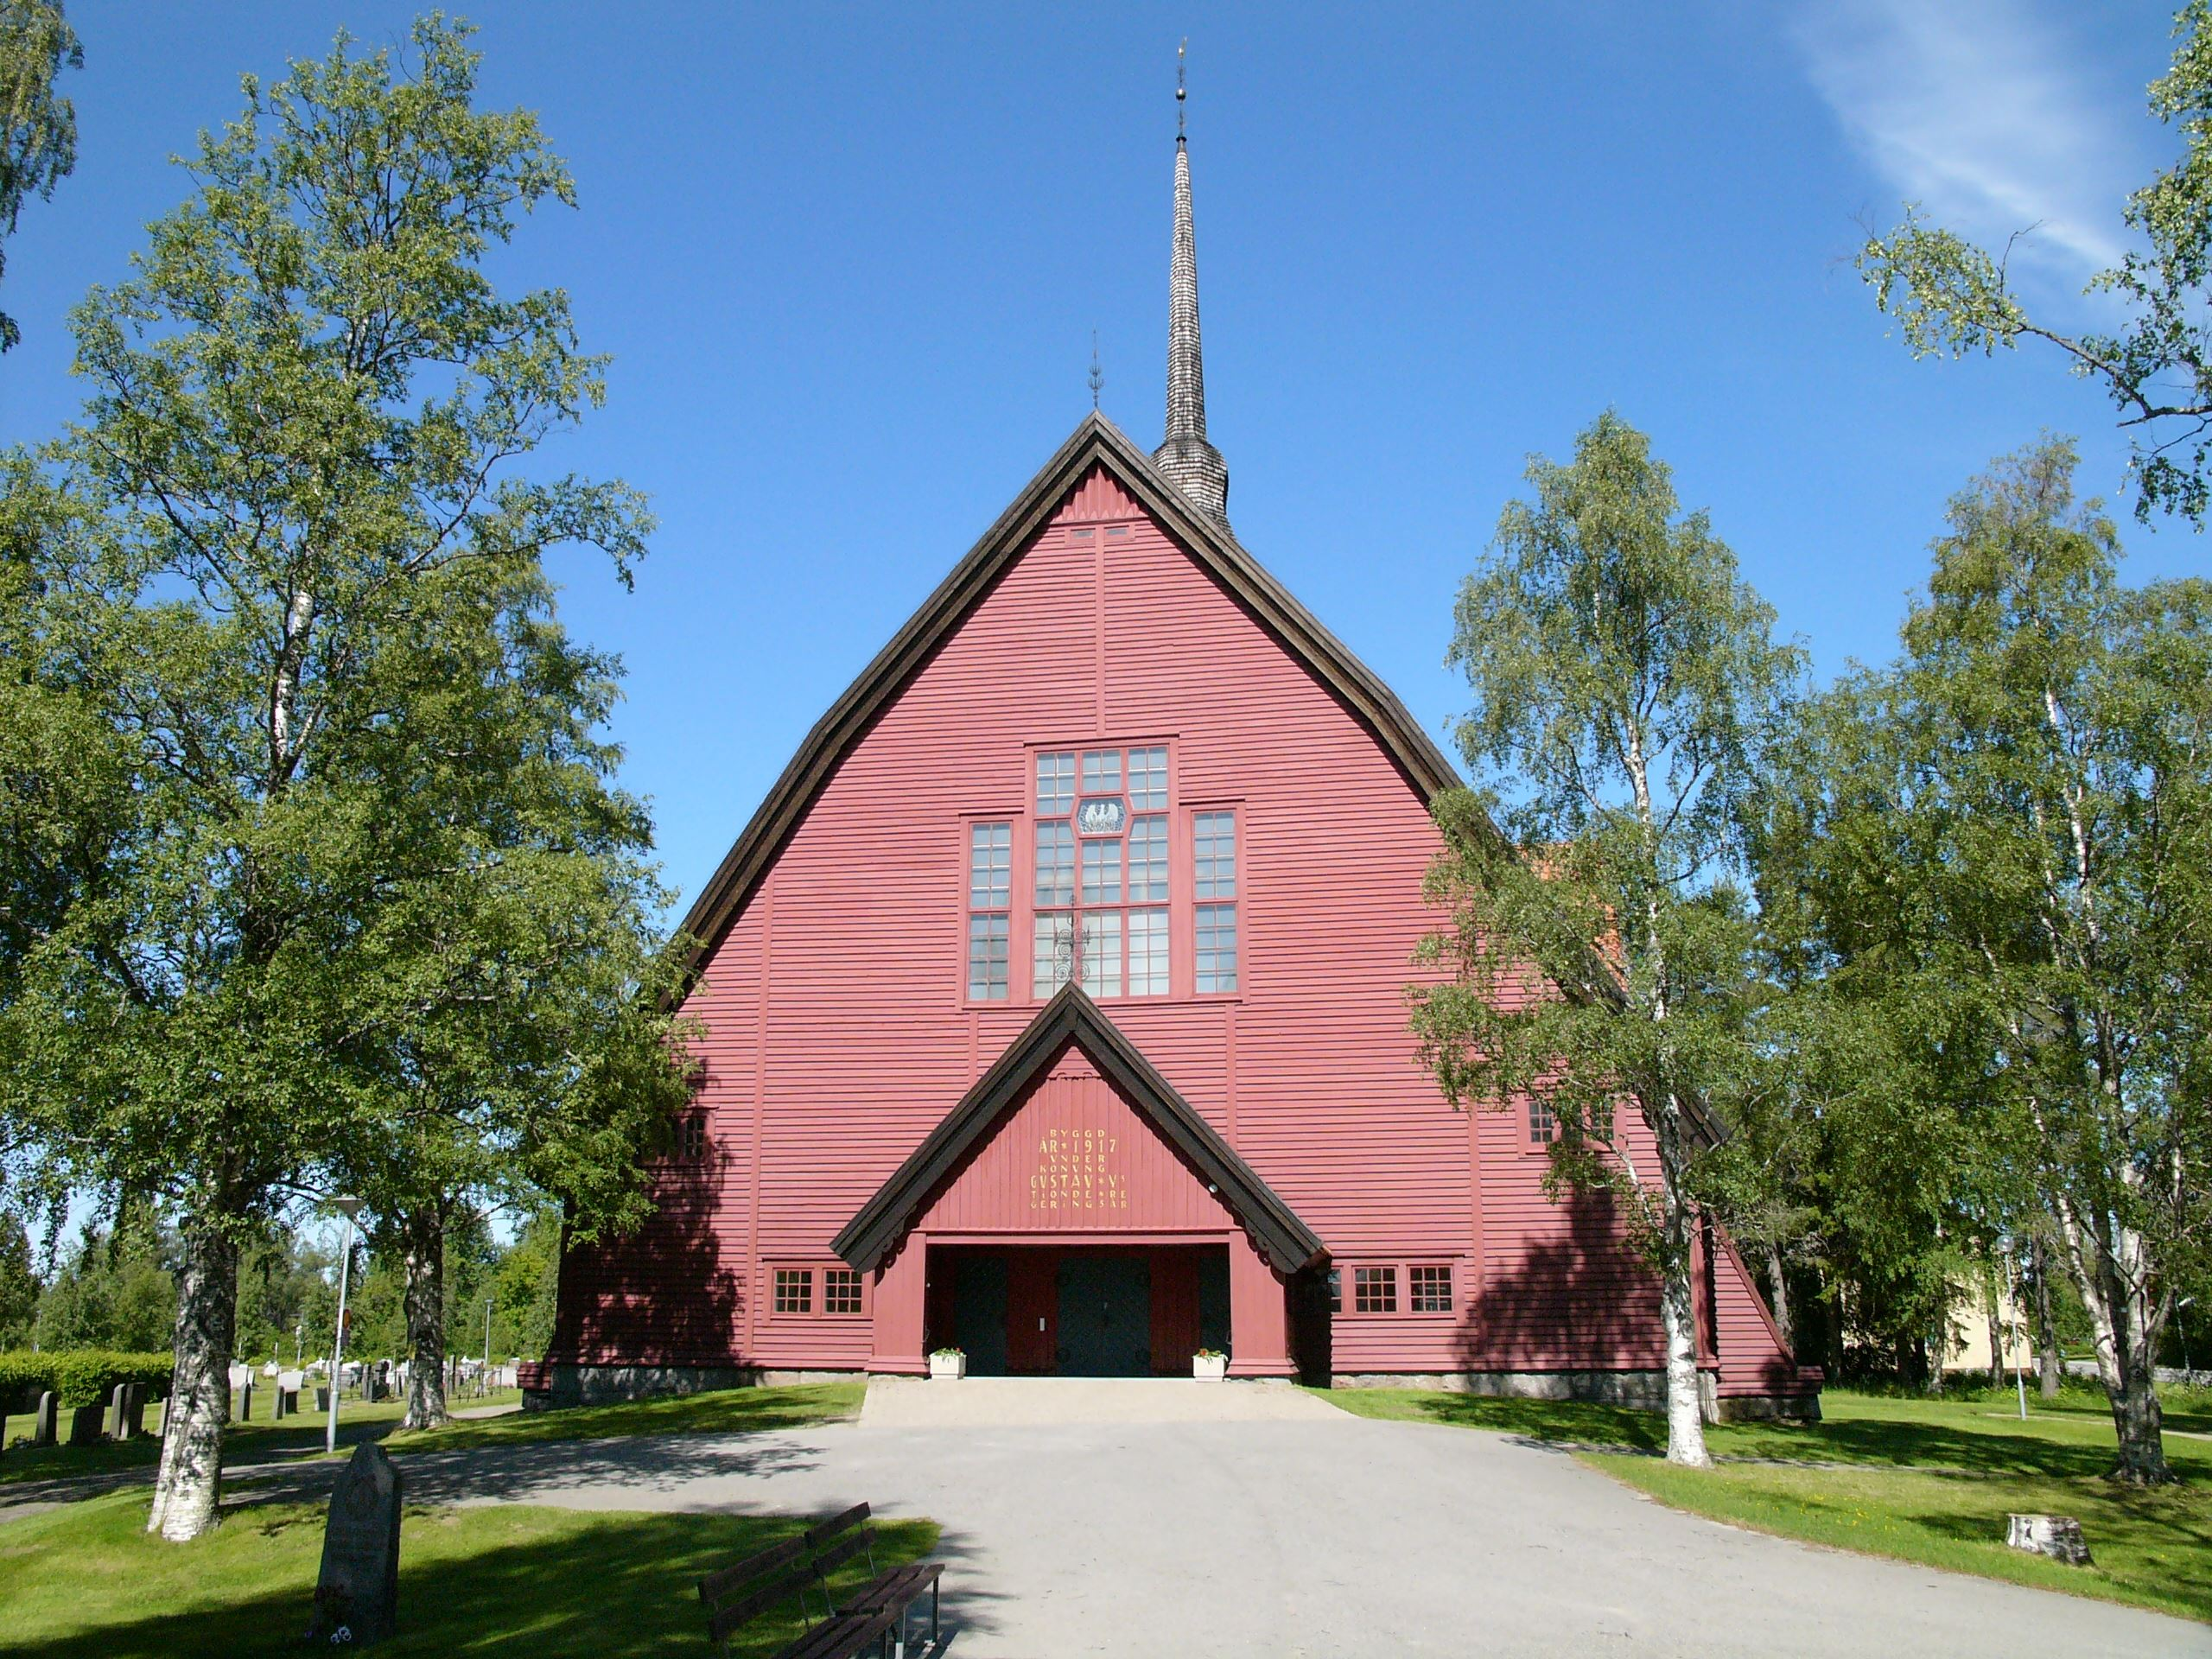 Norsjö Church